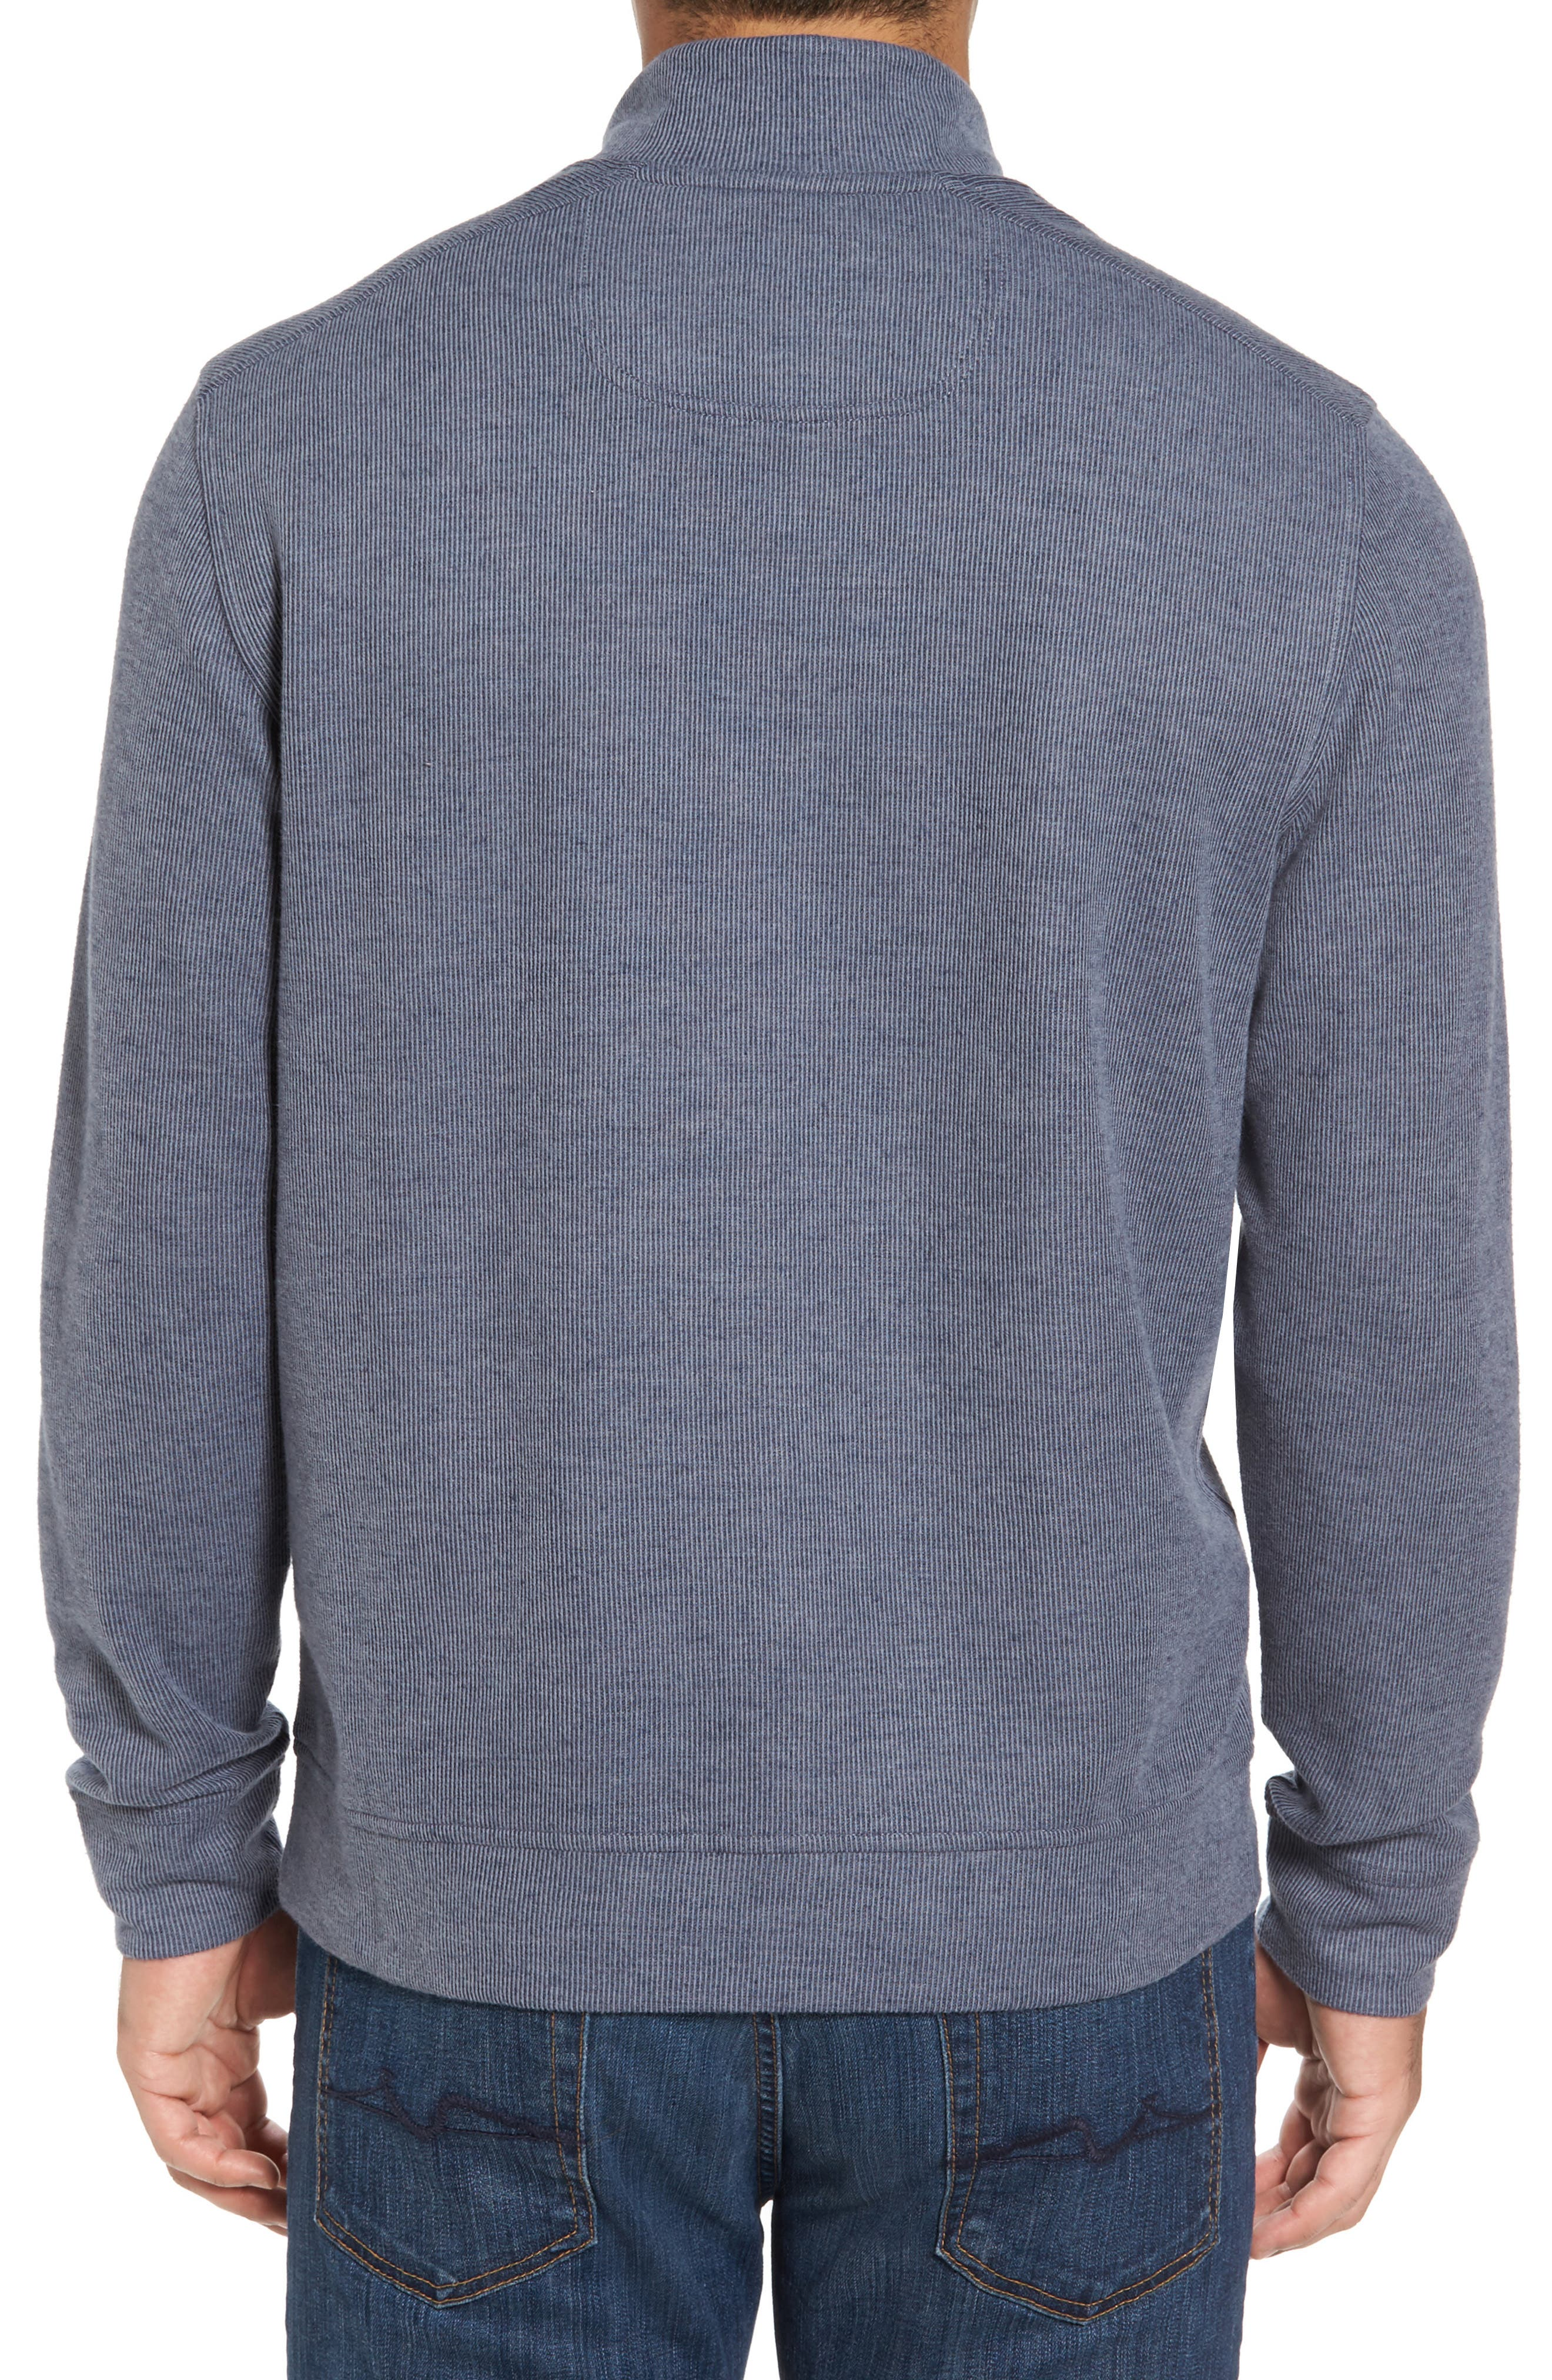 Alternate Image 2  - Tommy Bahama Cold Springs Snap Mock Neck Sweater